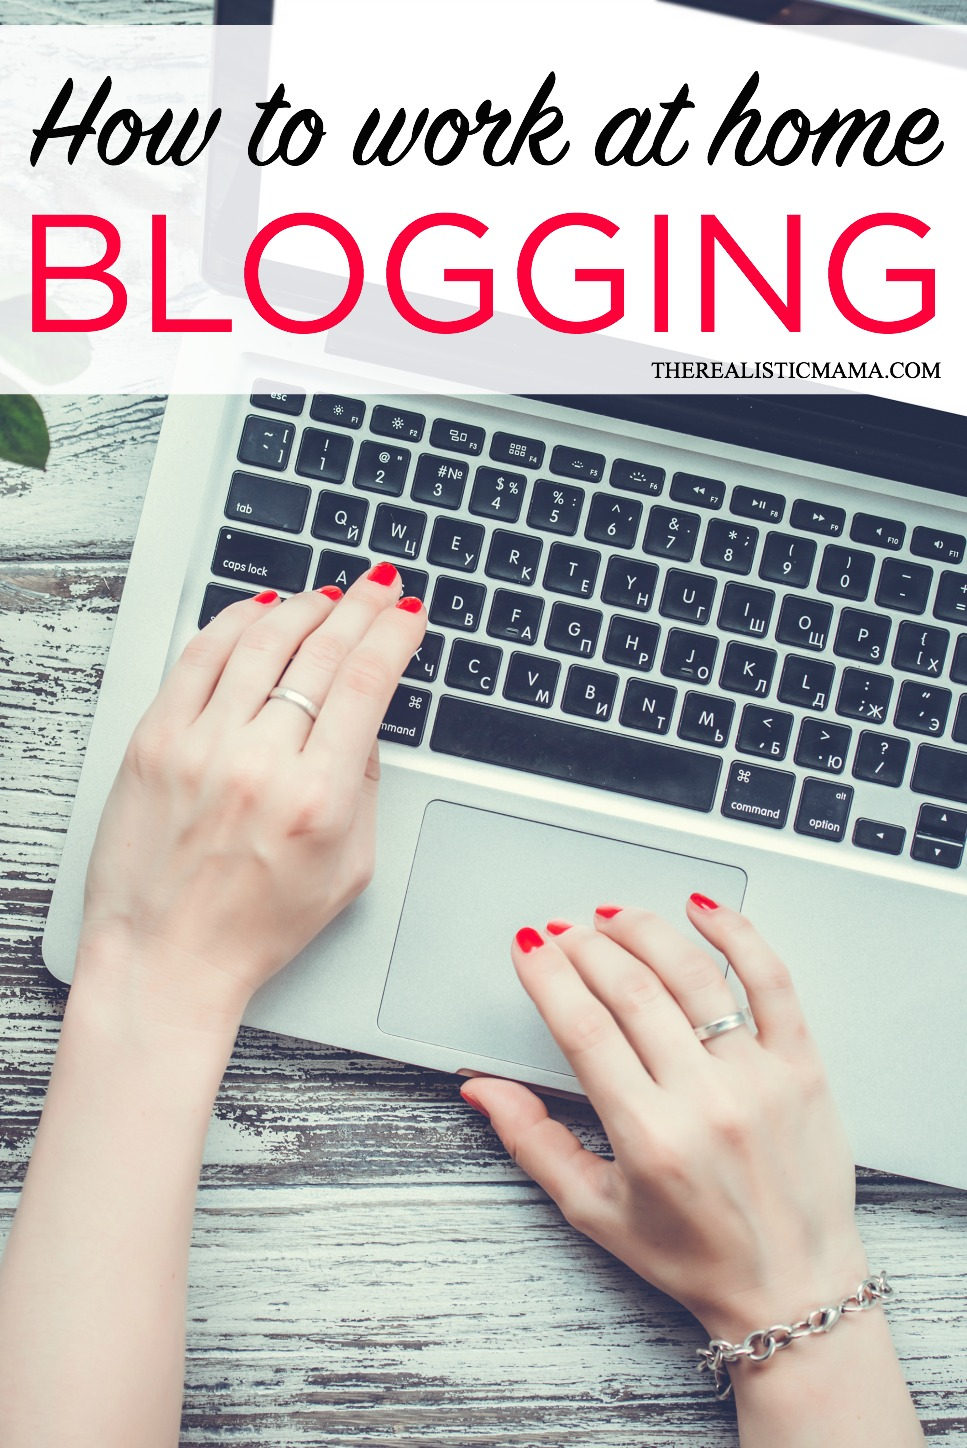 How to work at home blogging and make FULL TIME income!! She only works 3 hours a day!